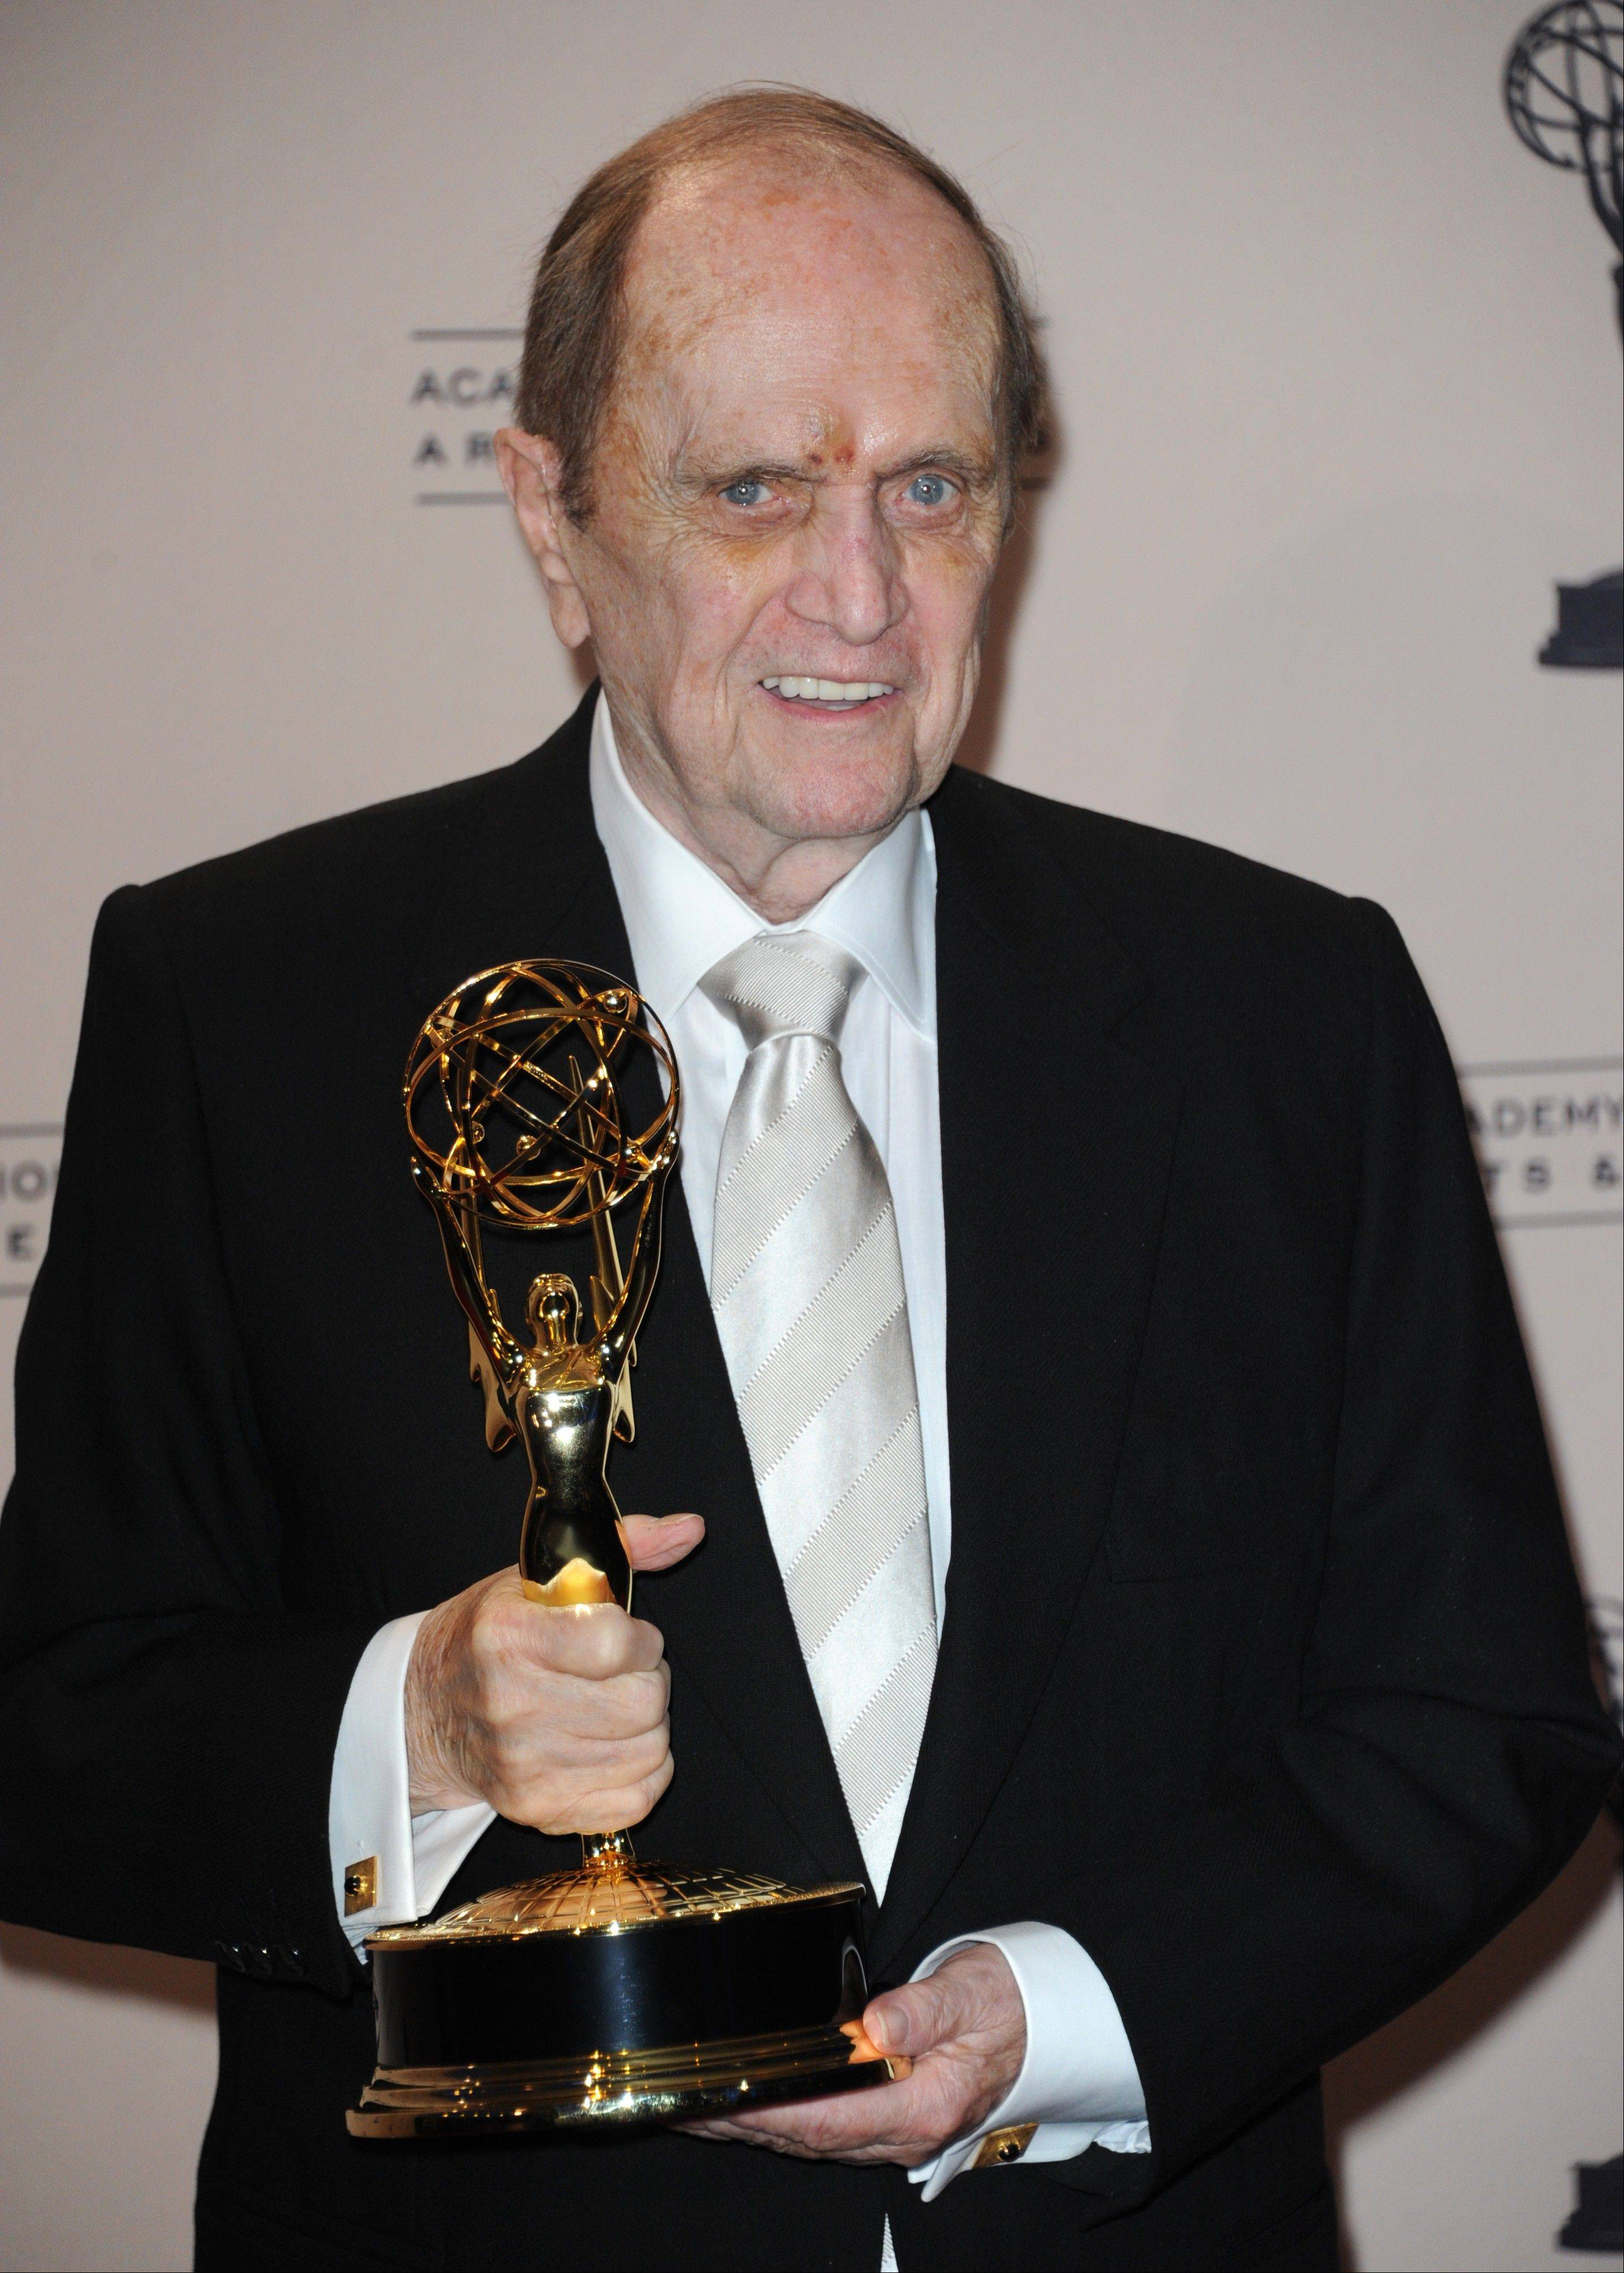 Bob Newhart poses with his award for outstanding guest actor in a comedy series for �The Big Bang Theory� at the Primetime Creative Arts Emmy Awards at the Nokia Theatre on Sunday in Los Angeles.